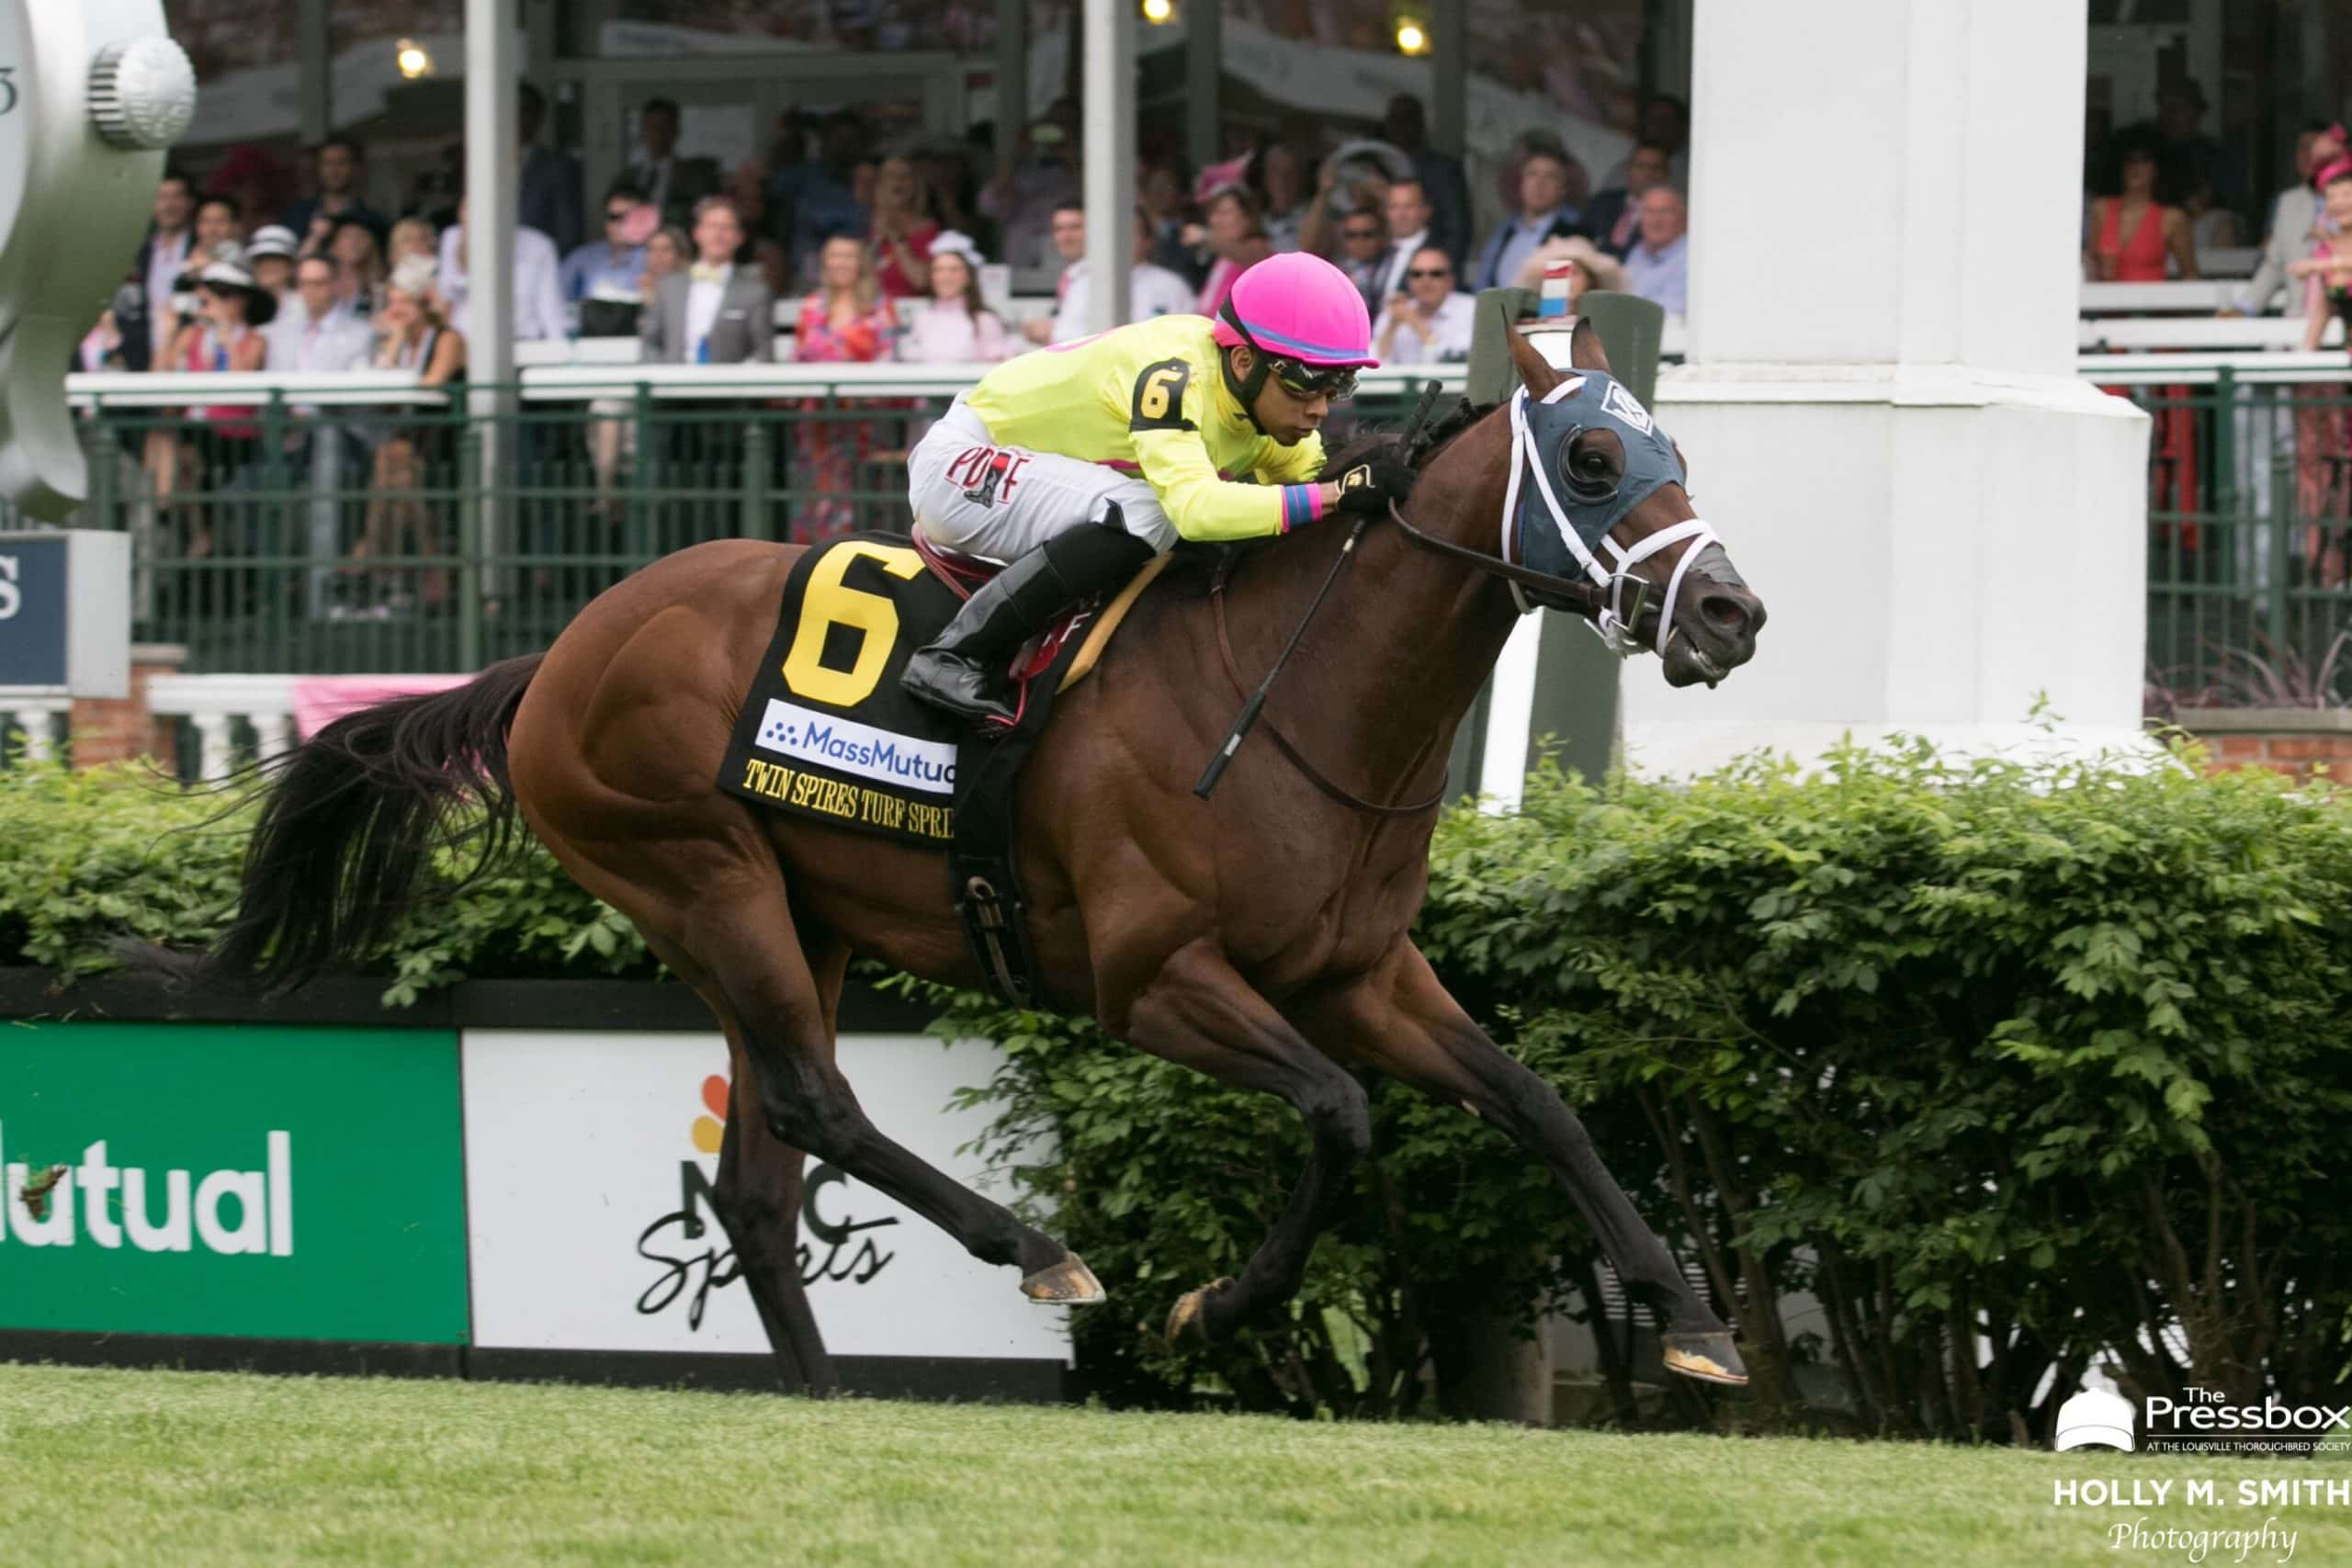 Belmont Stakes Day: G1 Jaipur Invitational Preview - The